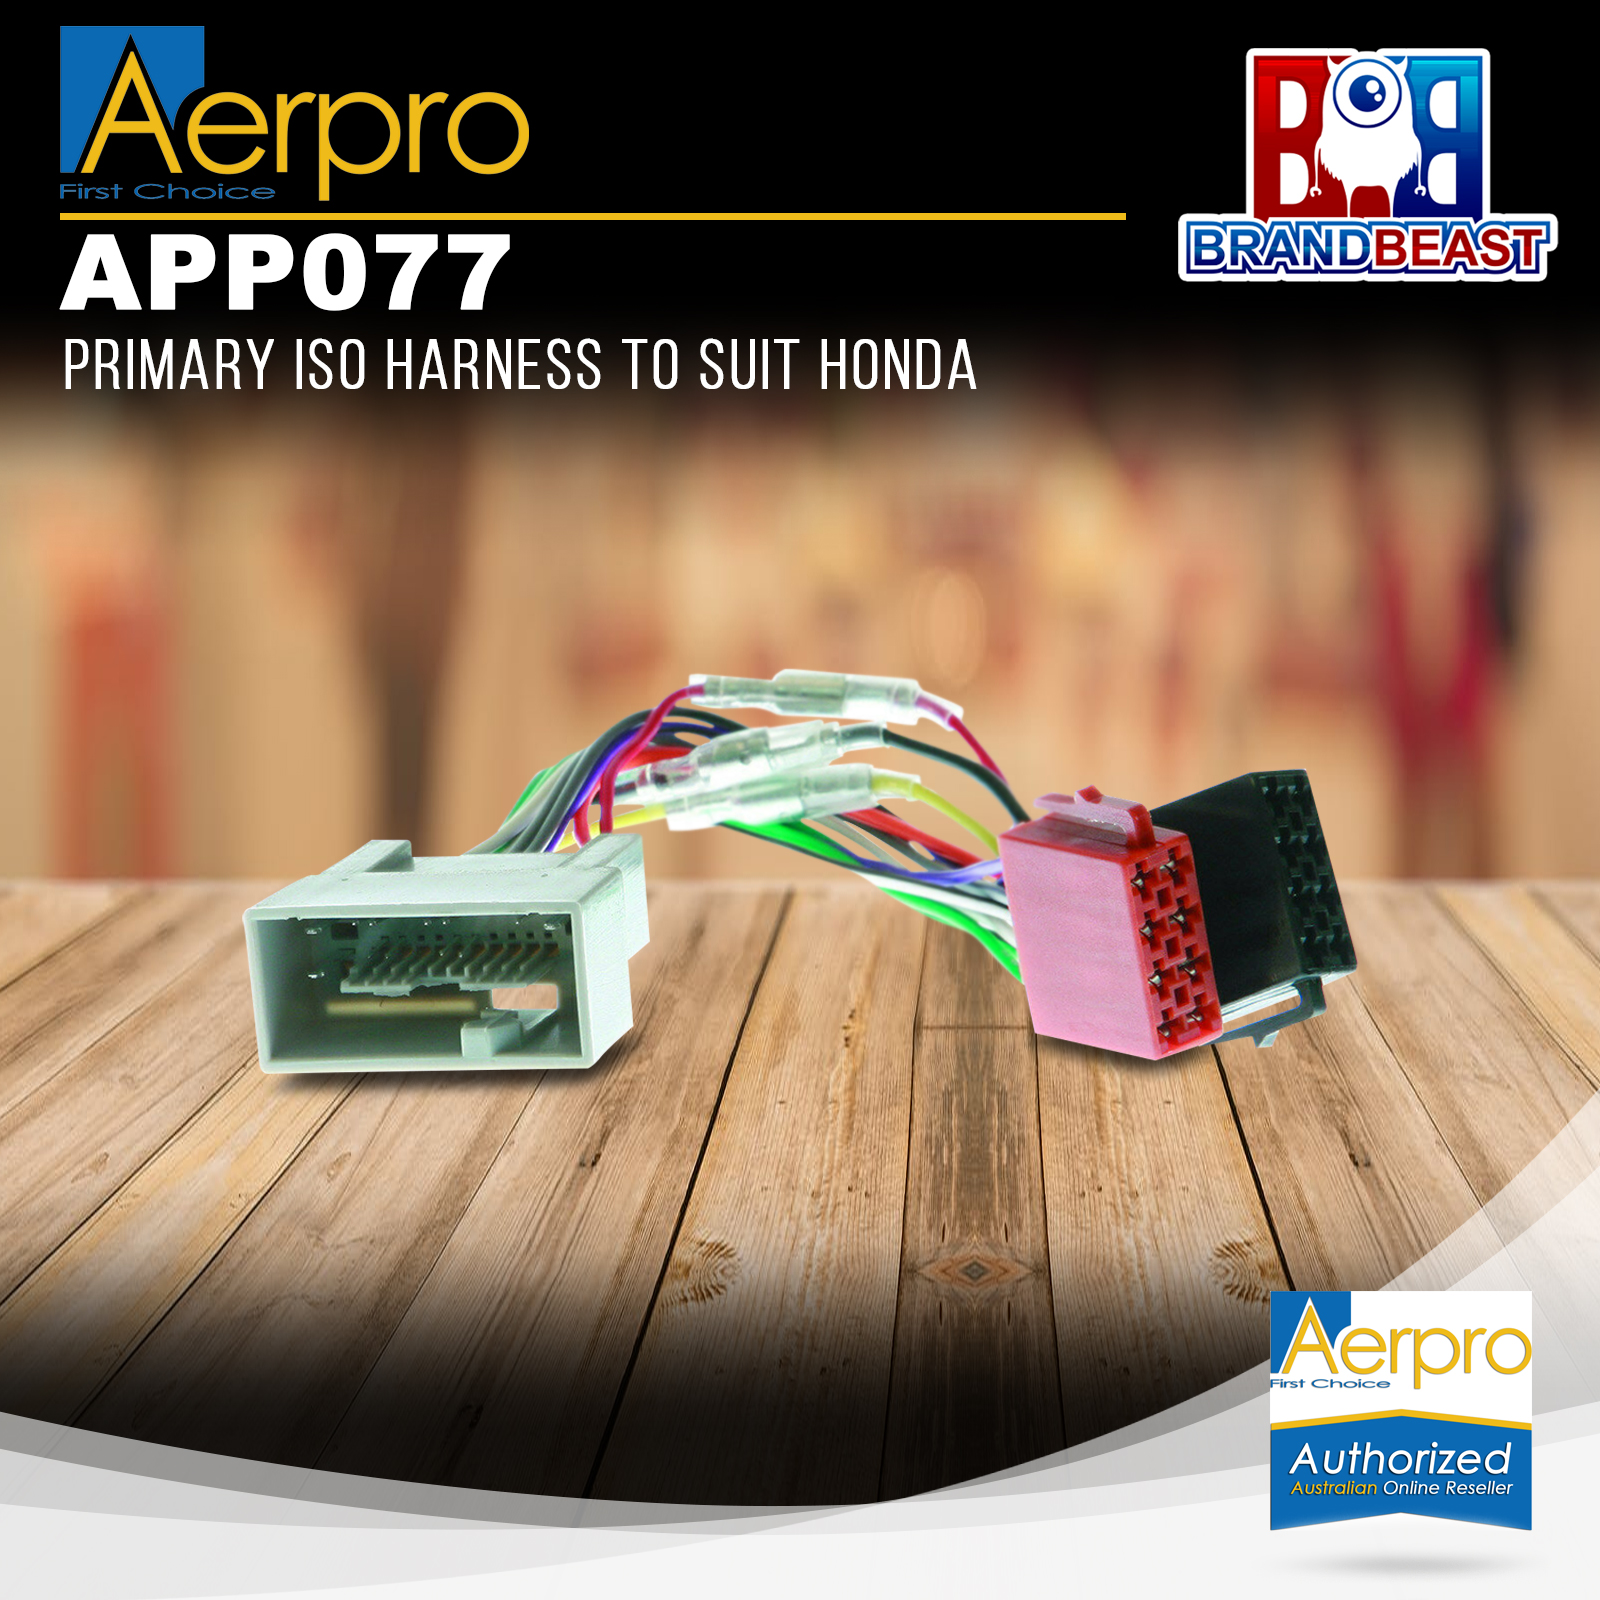 Details about Aerpro APP077 Primary ISO Harness to Suit Honda on